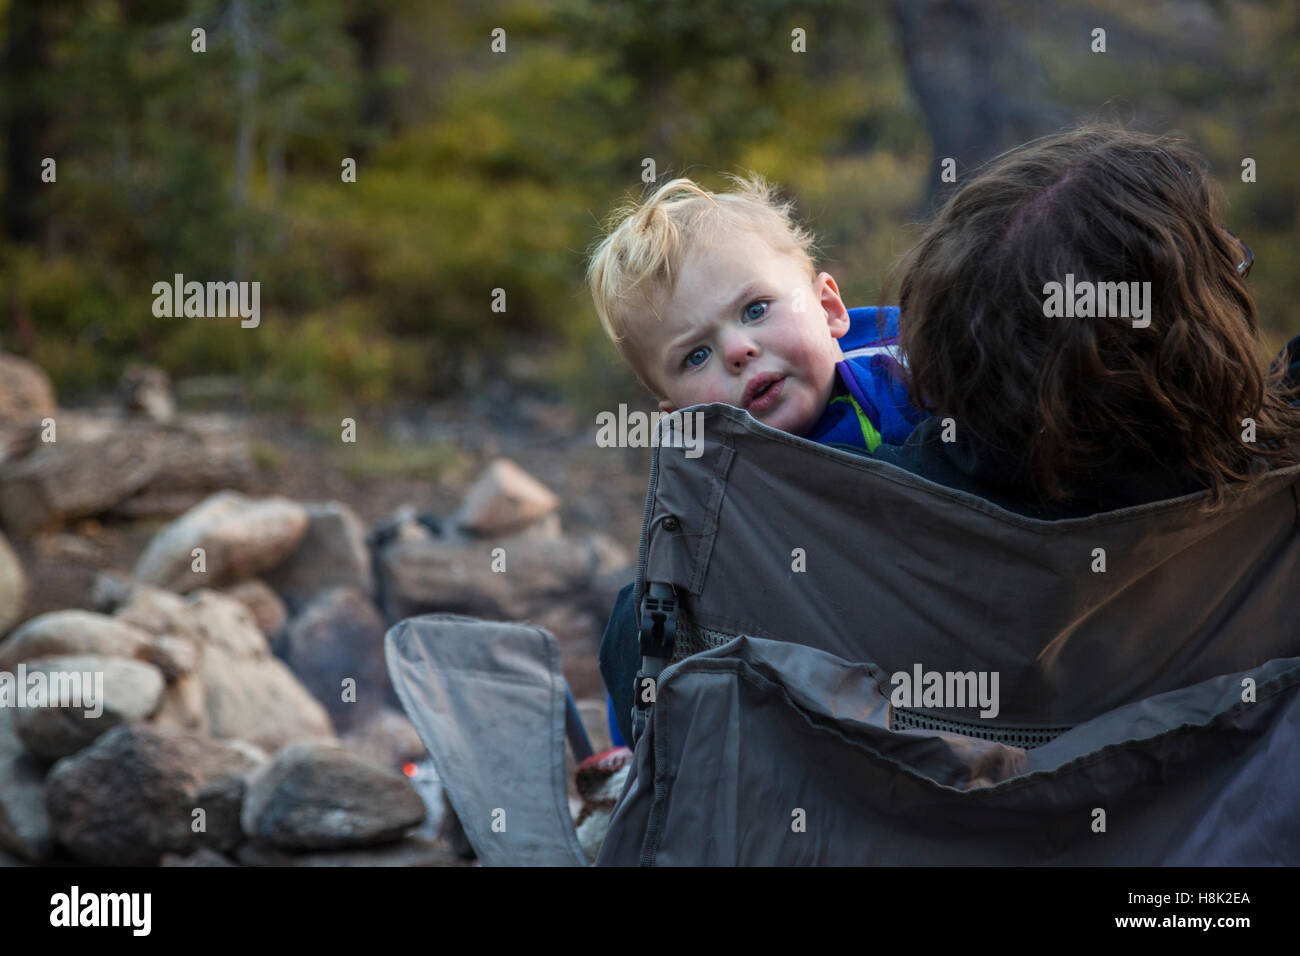 Tabernash, Colorado - Two-year-old Adam Hjermstad Jr. with his mother on a camping trip in the Rocky Mountains. - Stock Image